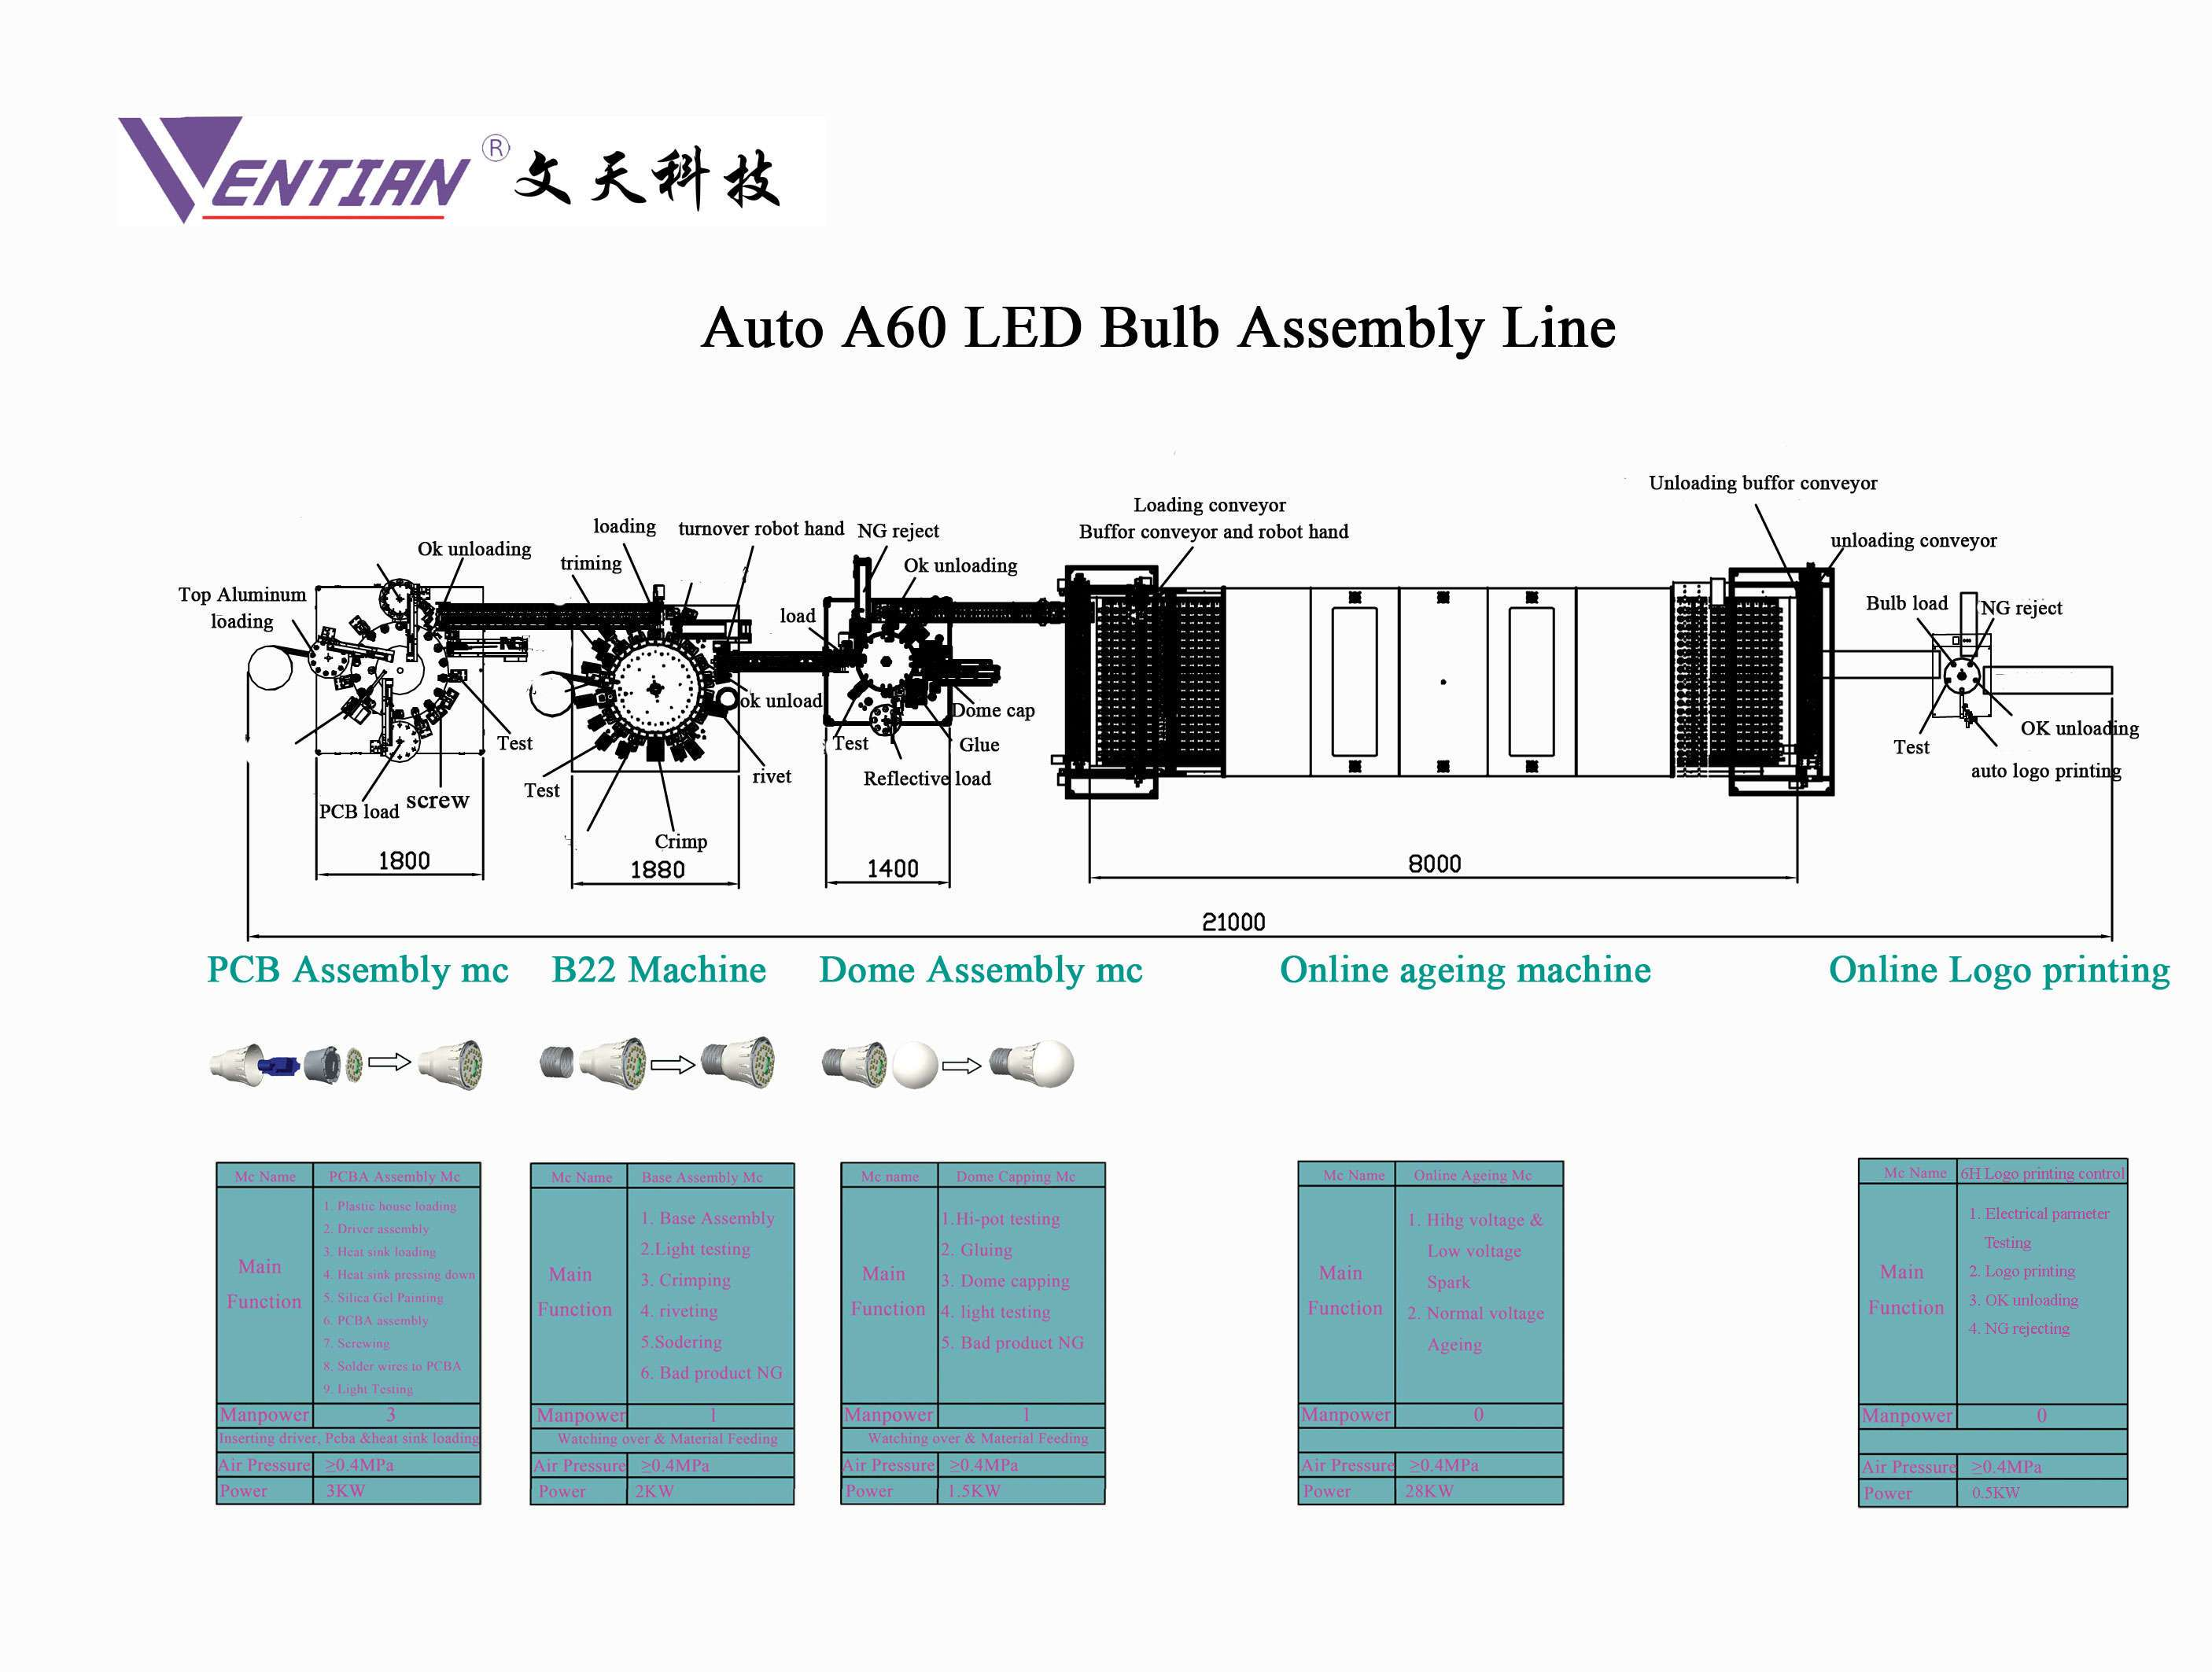 China Lightingled Lights Lighting Directory On 2014 Hot Led Tube Circuit 4ft Light Diagram Auto Assembly Line Of Bulb